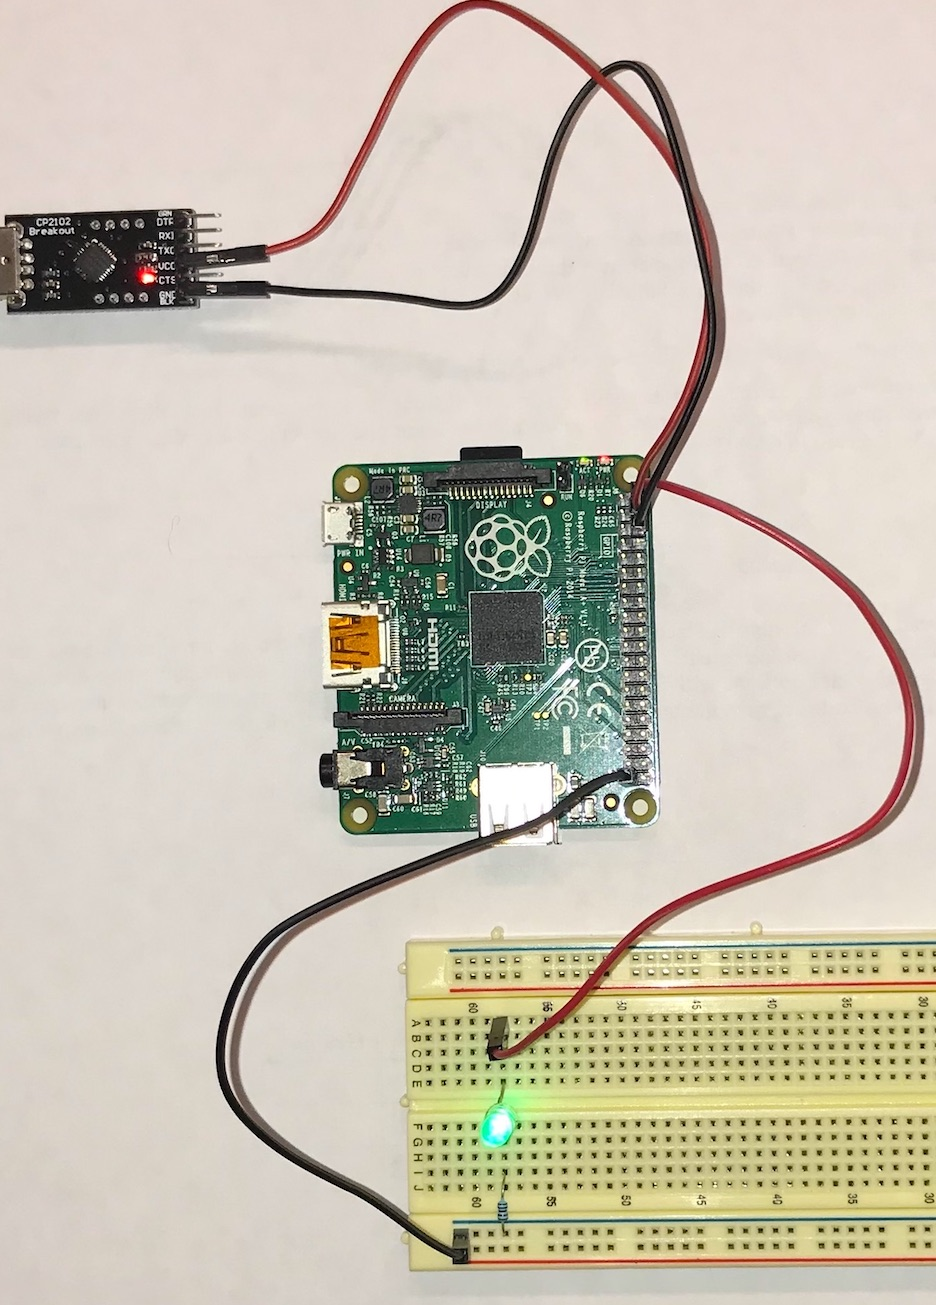 Cs107e Lab 1 Setup The Raspberry Pi Circuit Connected We Can Go Ahead And Add Some Code For Our Replace Your 1k Resistor With A 10k Does Brightness Of Led Change You Might Want To Coordinate Another Group So Compare